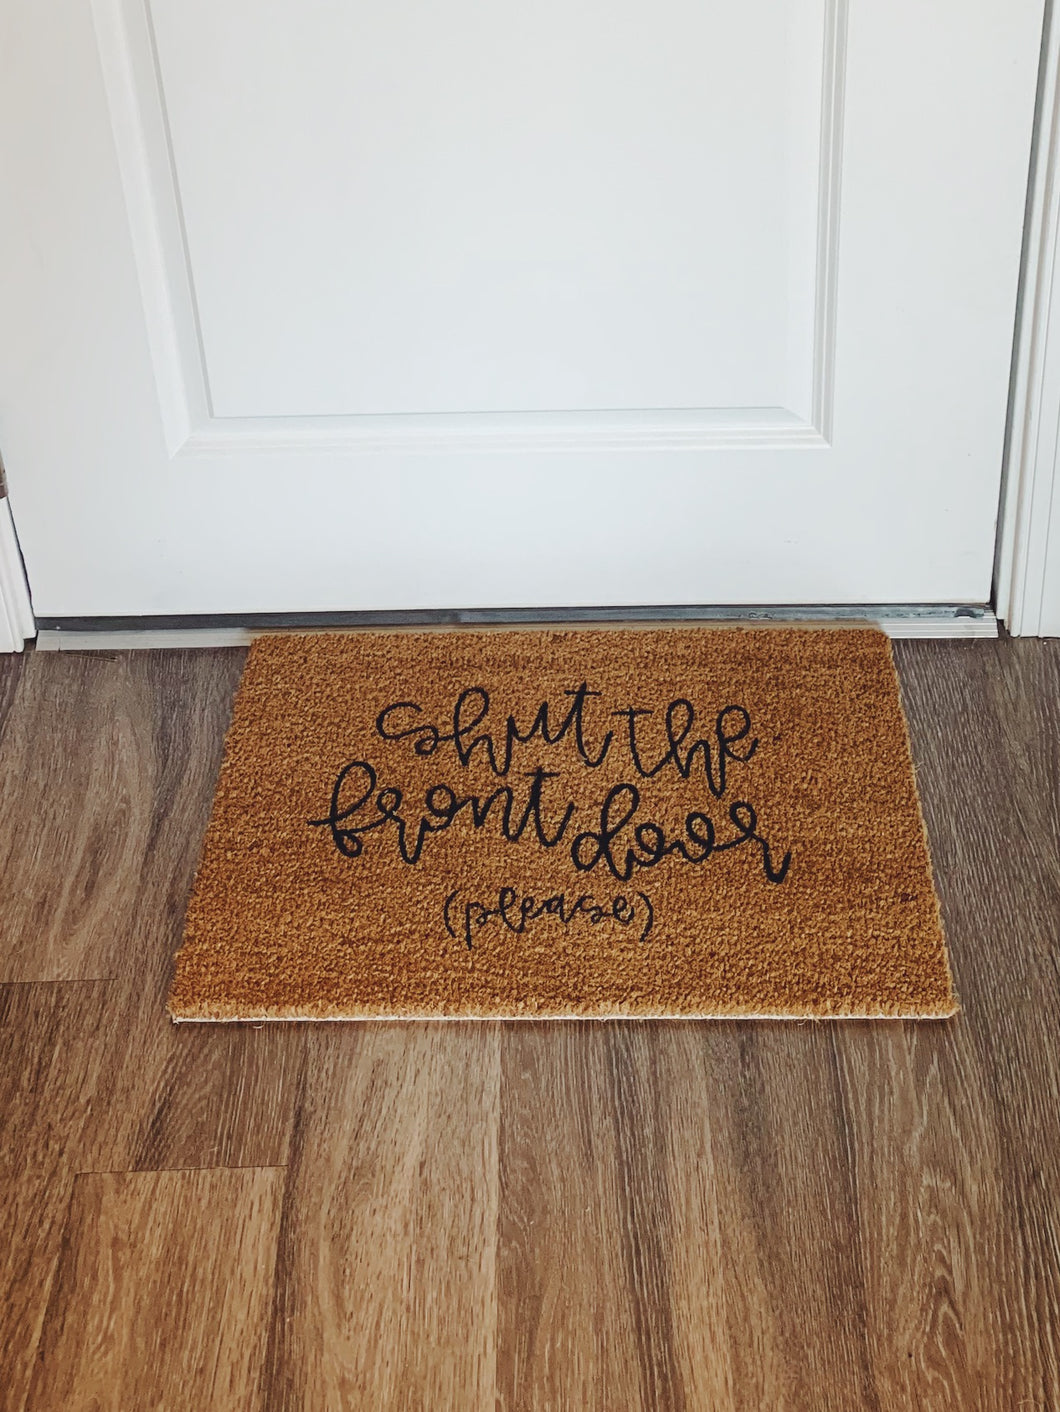 Village Co x Lottie Lane: Hand Painted Shut the Front Door Mat